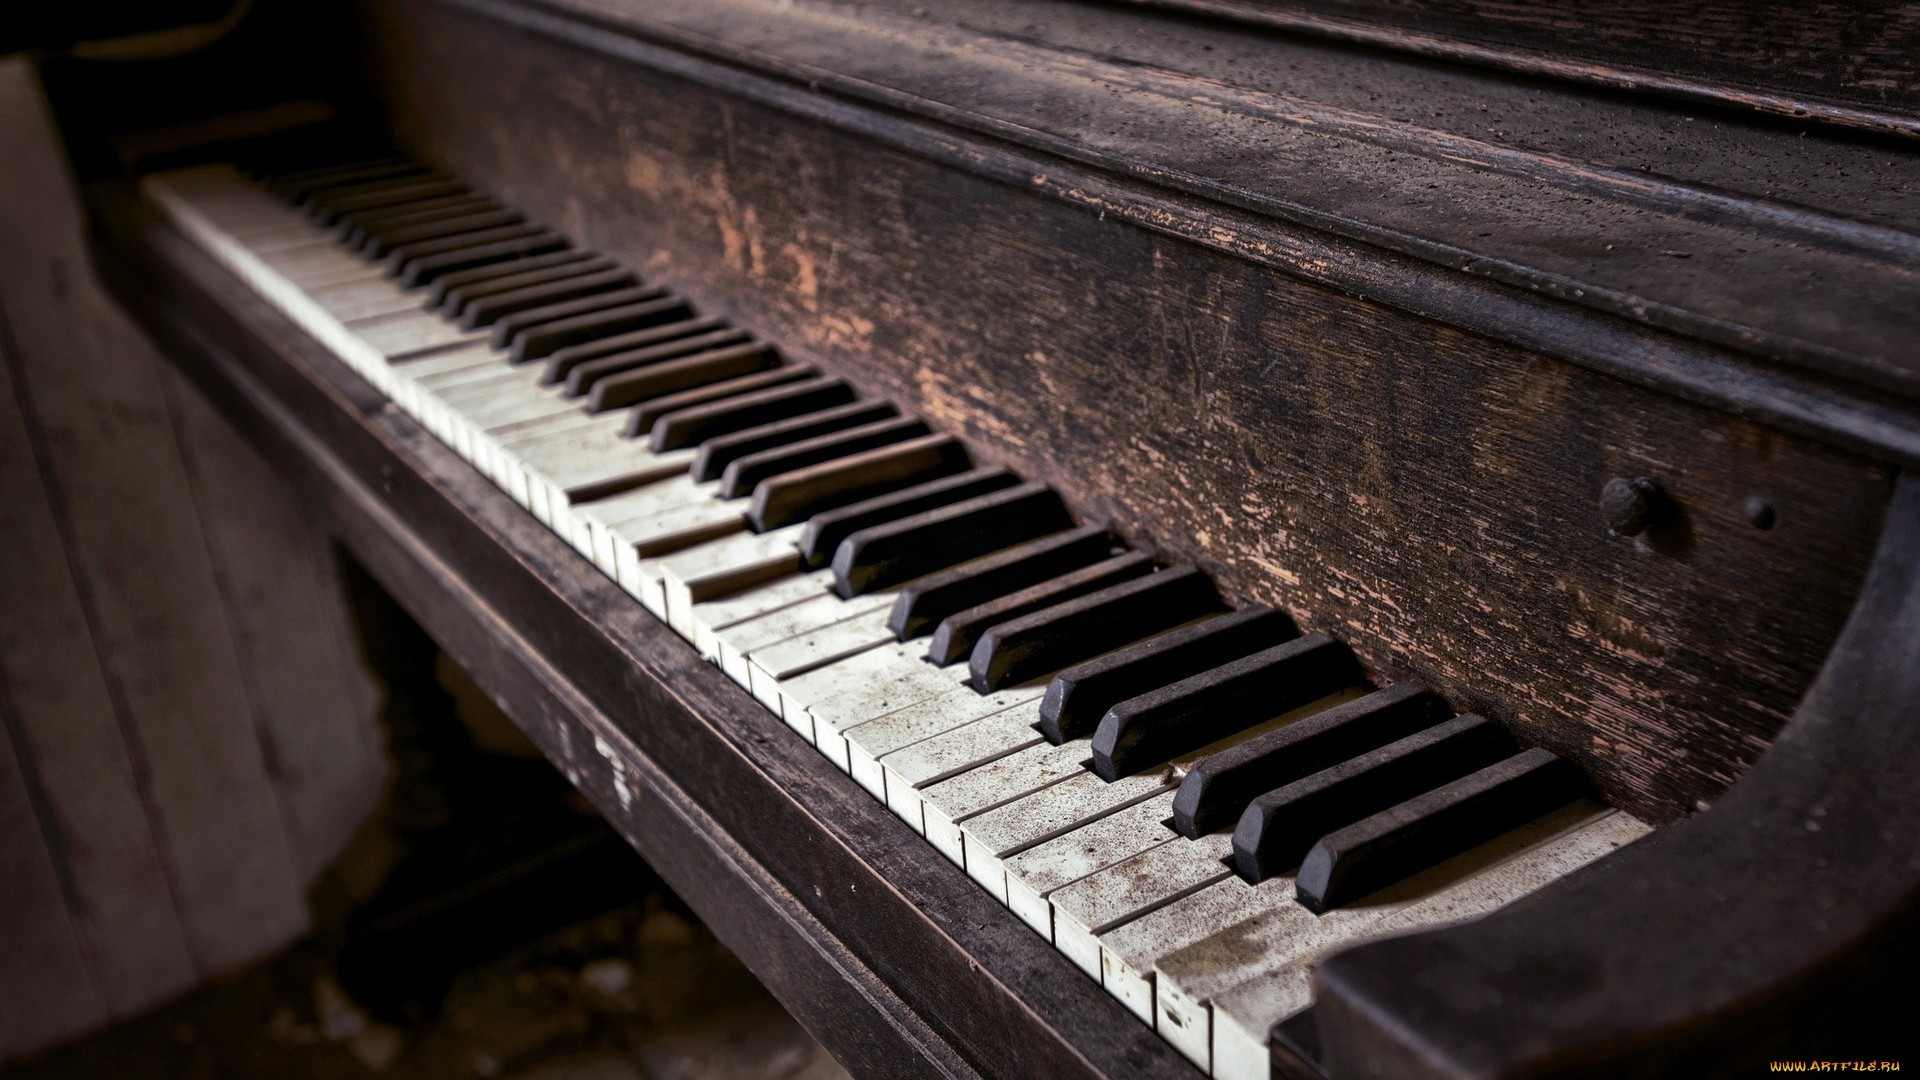 Piano Free Wallpaper and Background